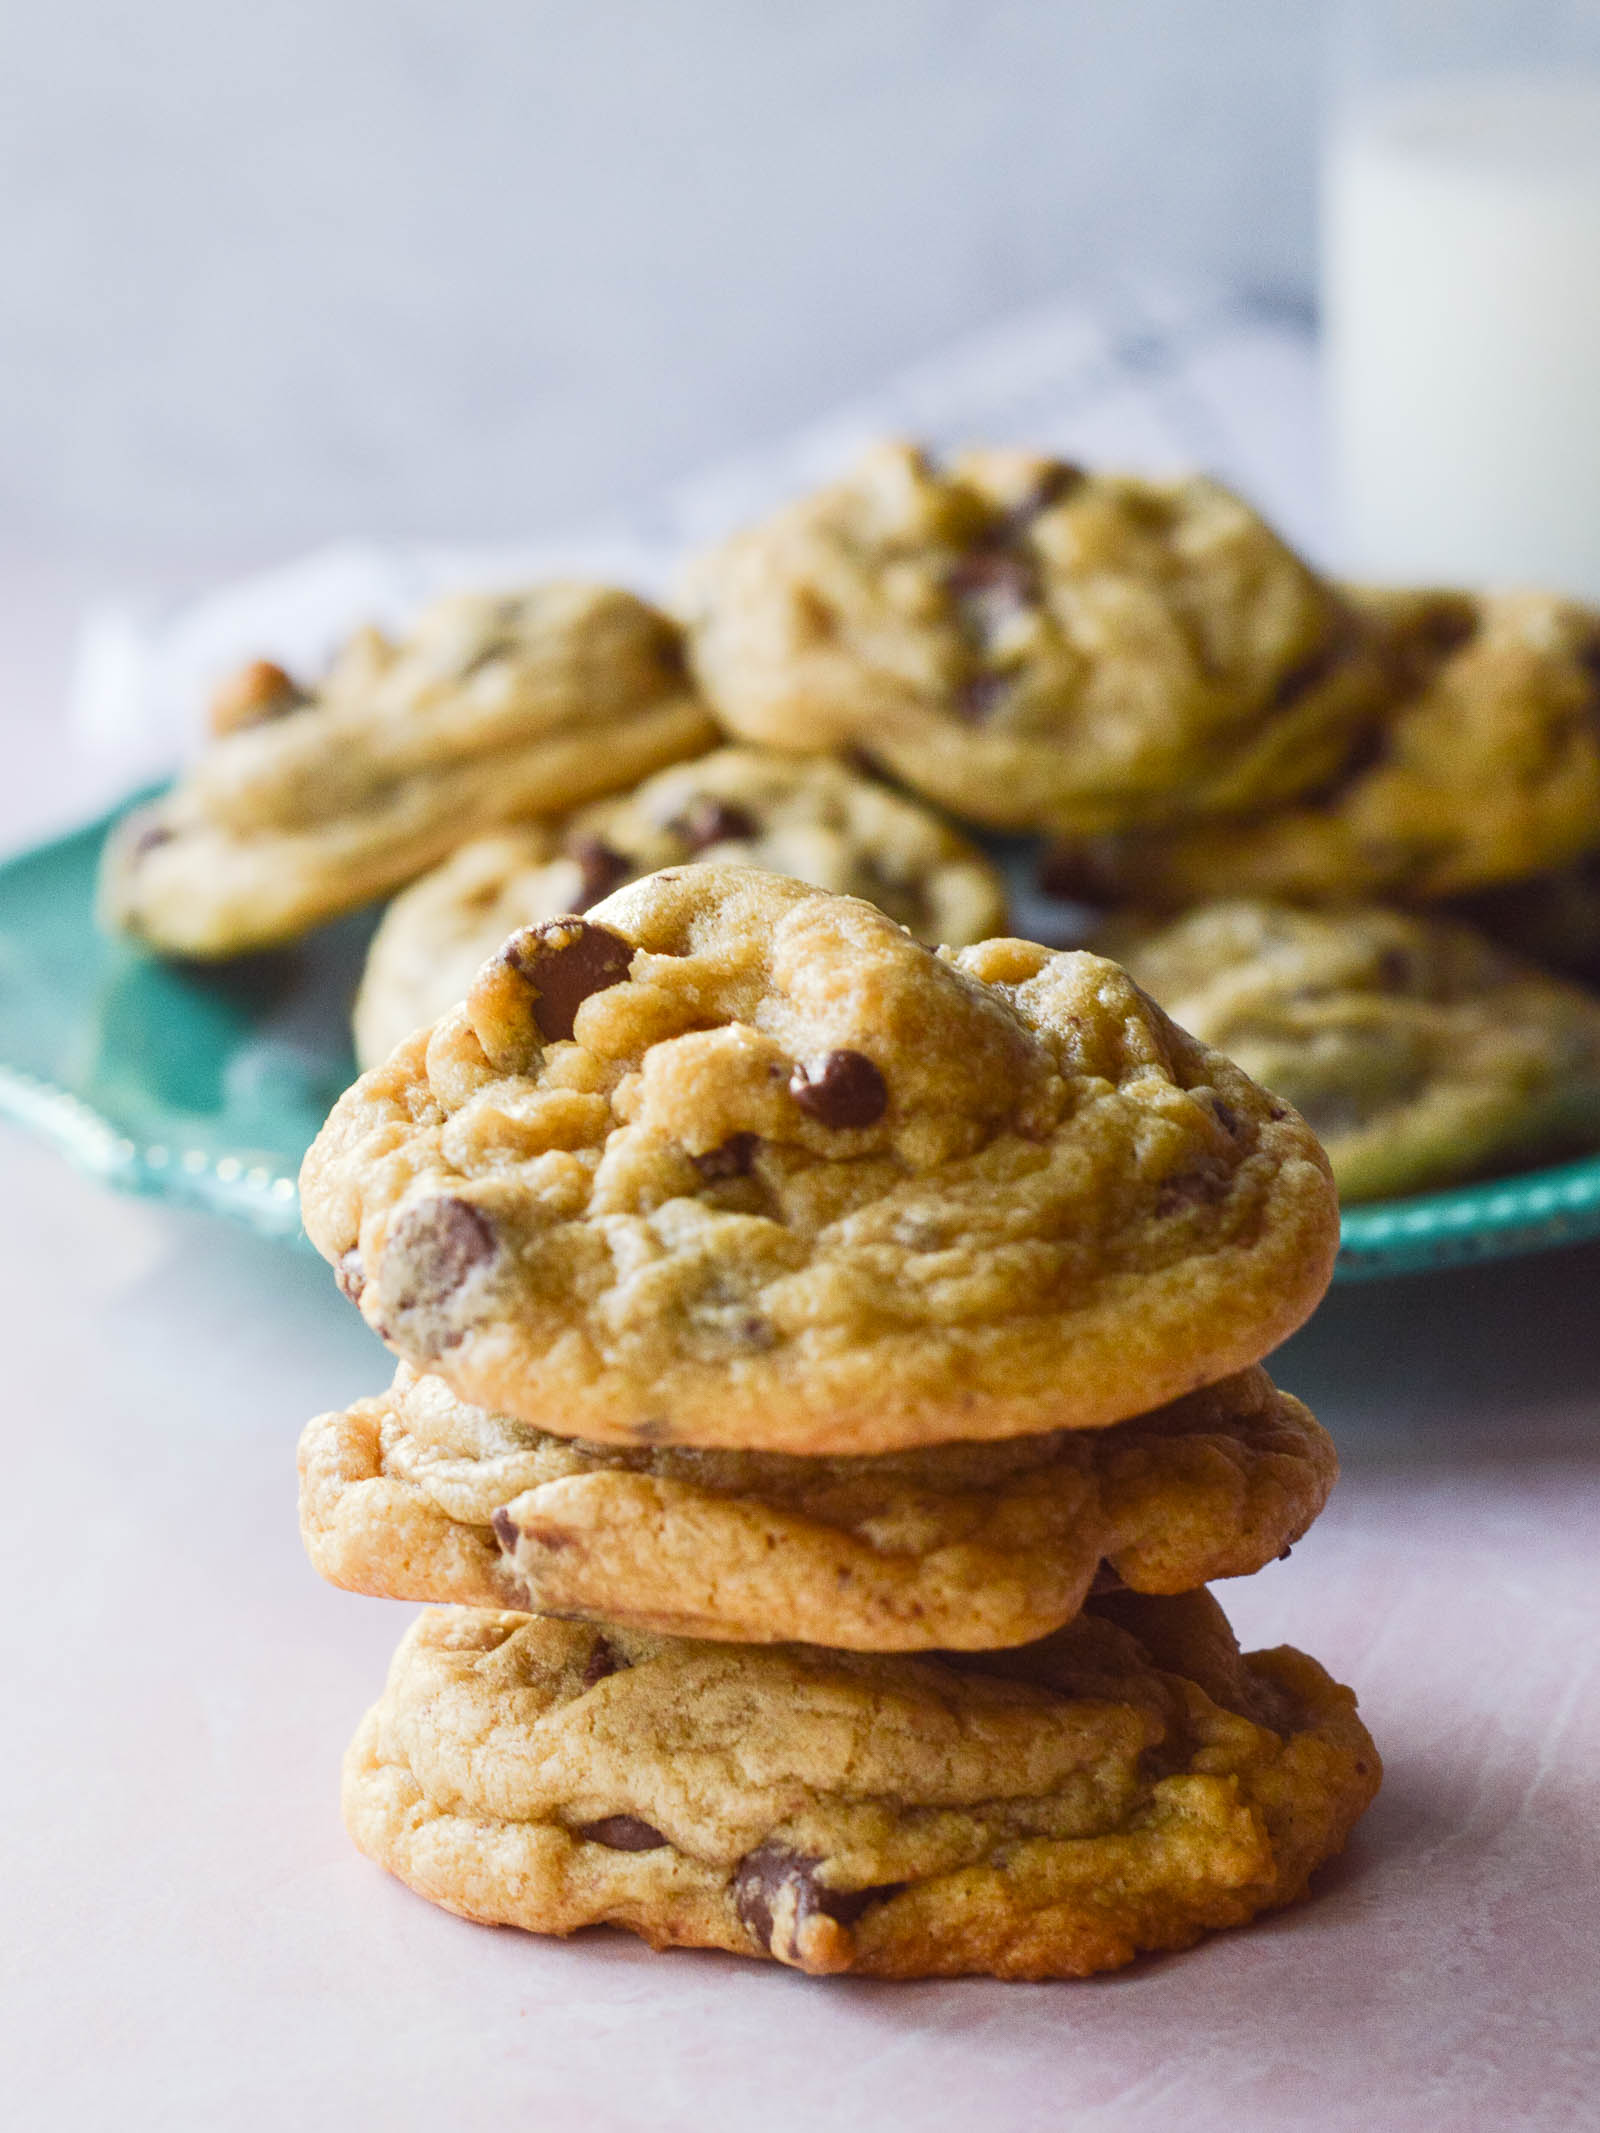 A stack of soft and perfectly wrinkly chocolate chip cookies made with pudding in the mix